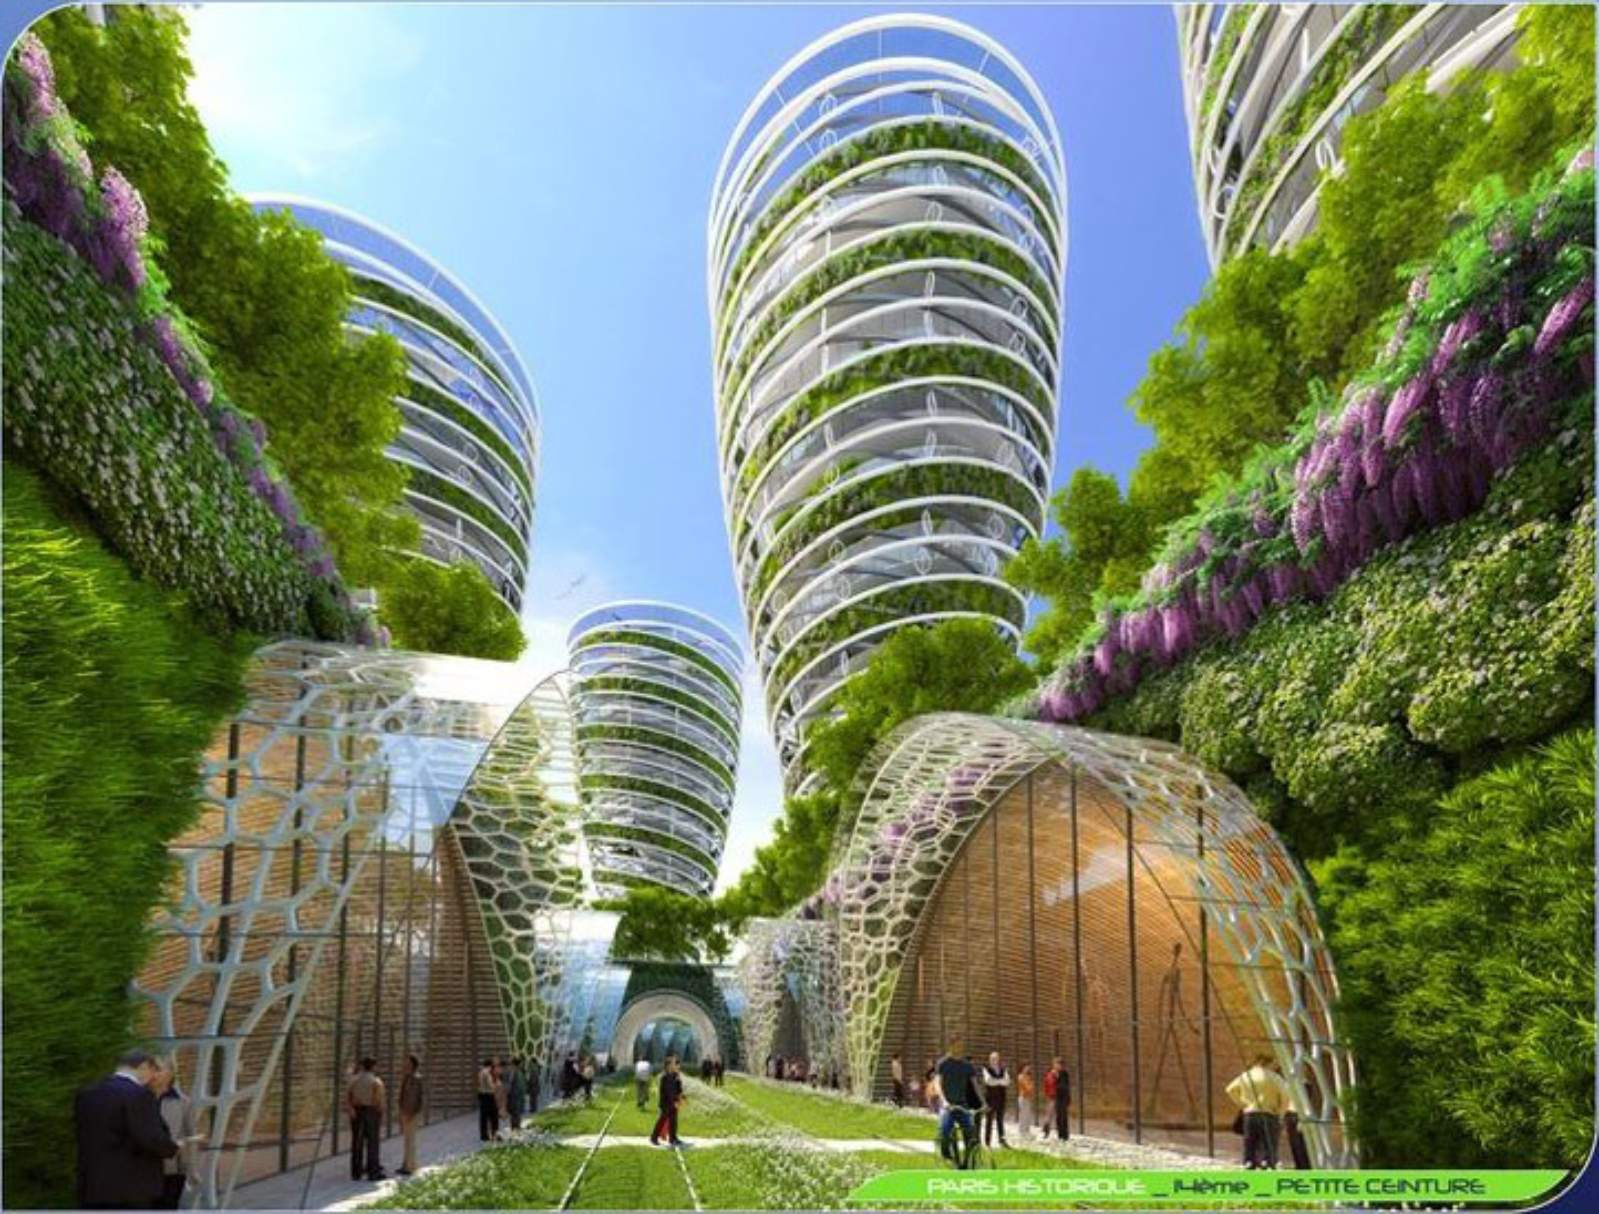 Paris smart city 2050 by vincent callebaut 05 for Architecture 2050